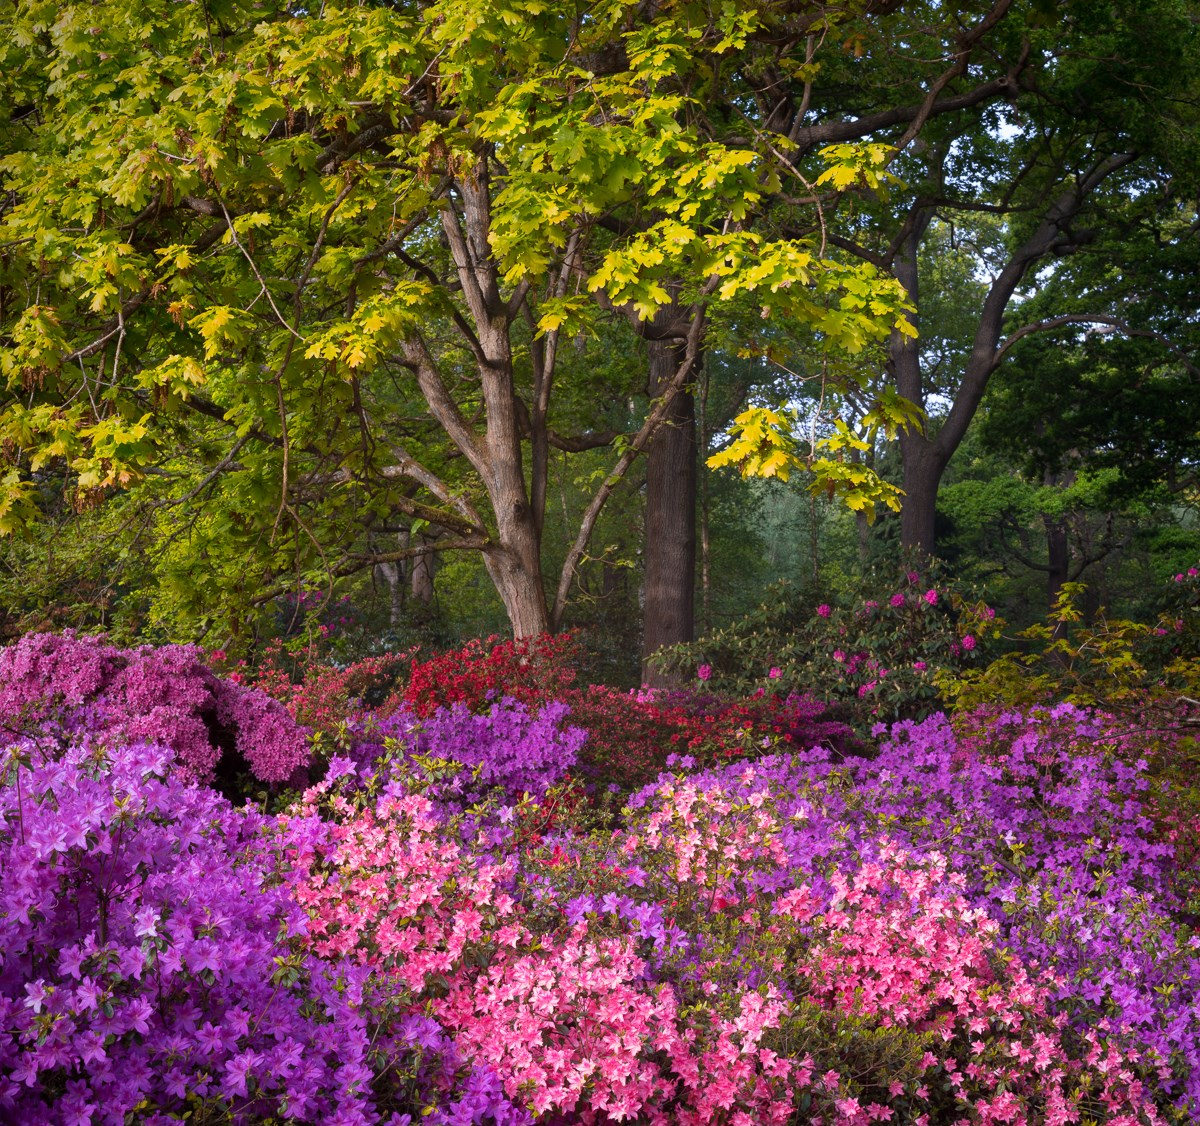 Polychromatic Forest, Isabella Plantation, Richmond Park, May 2017